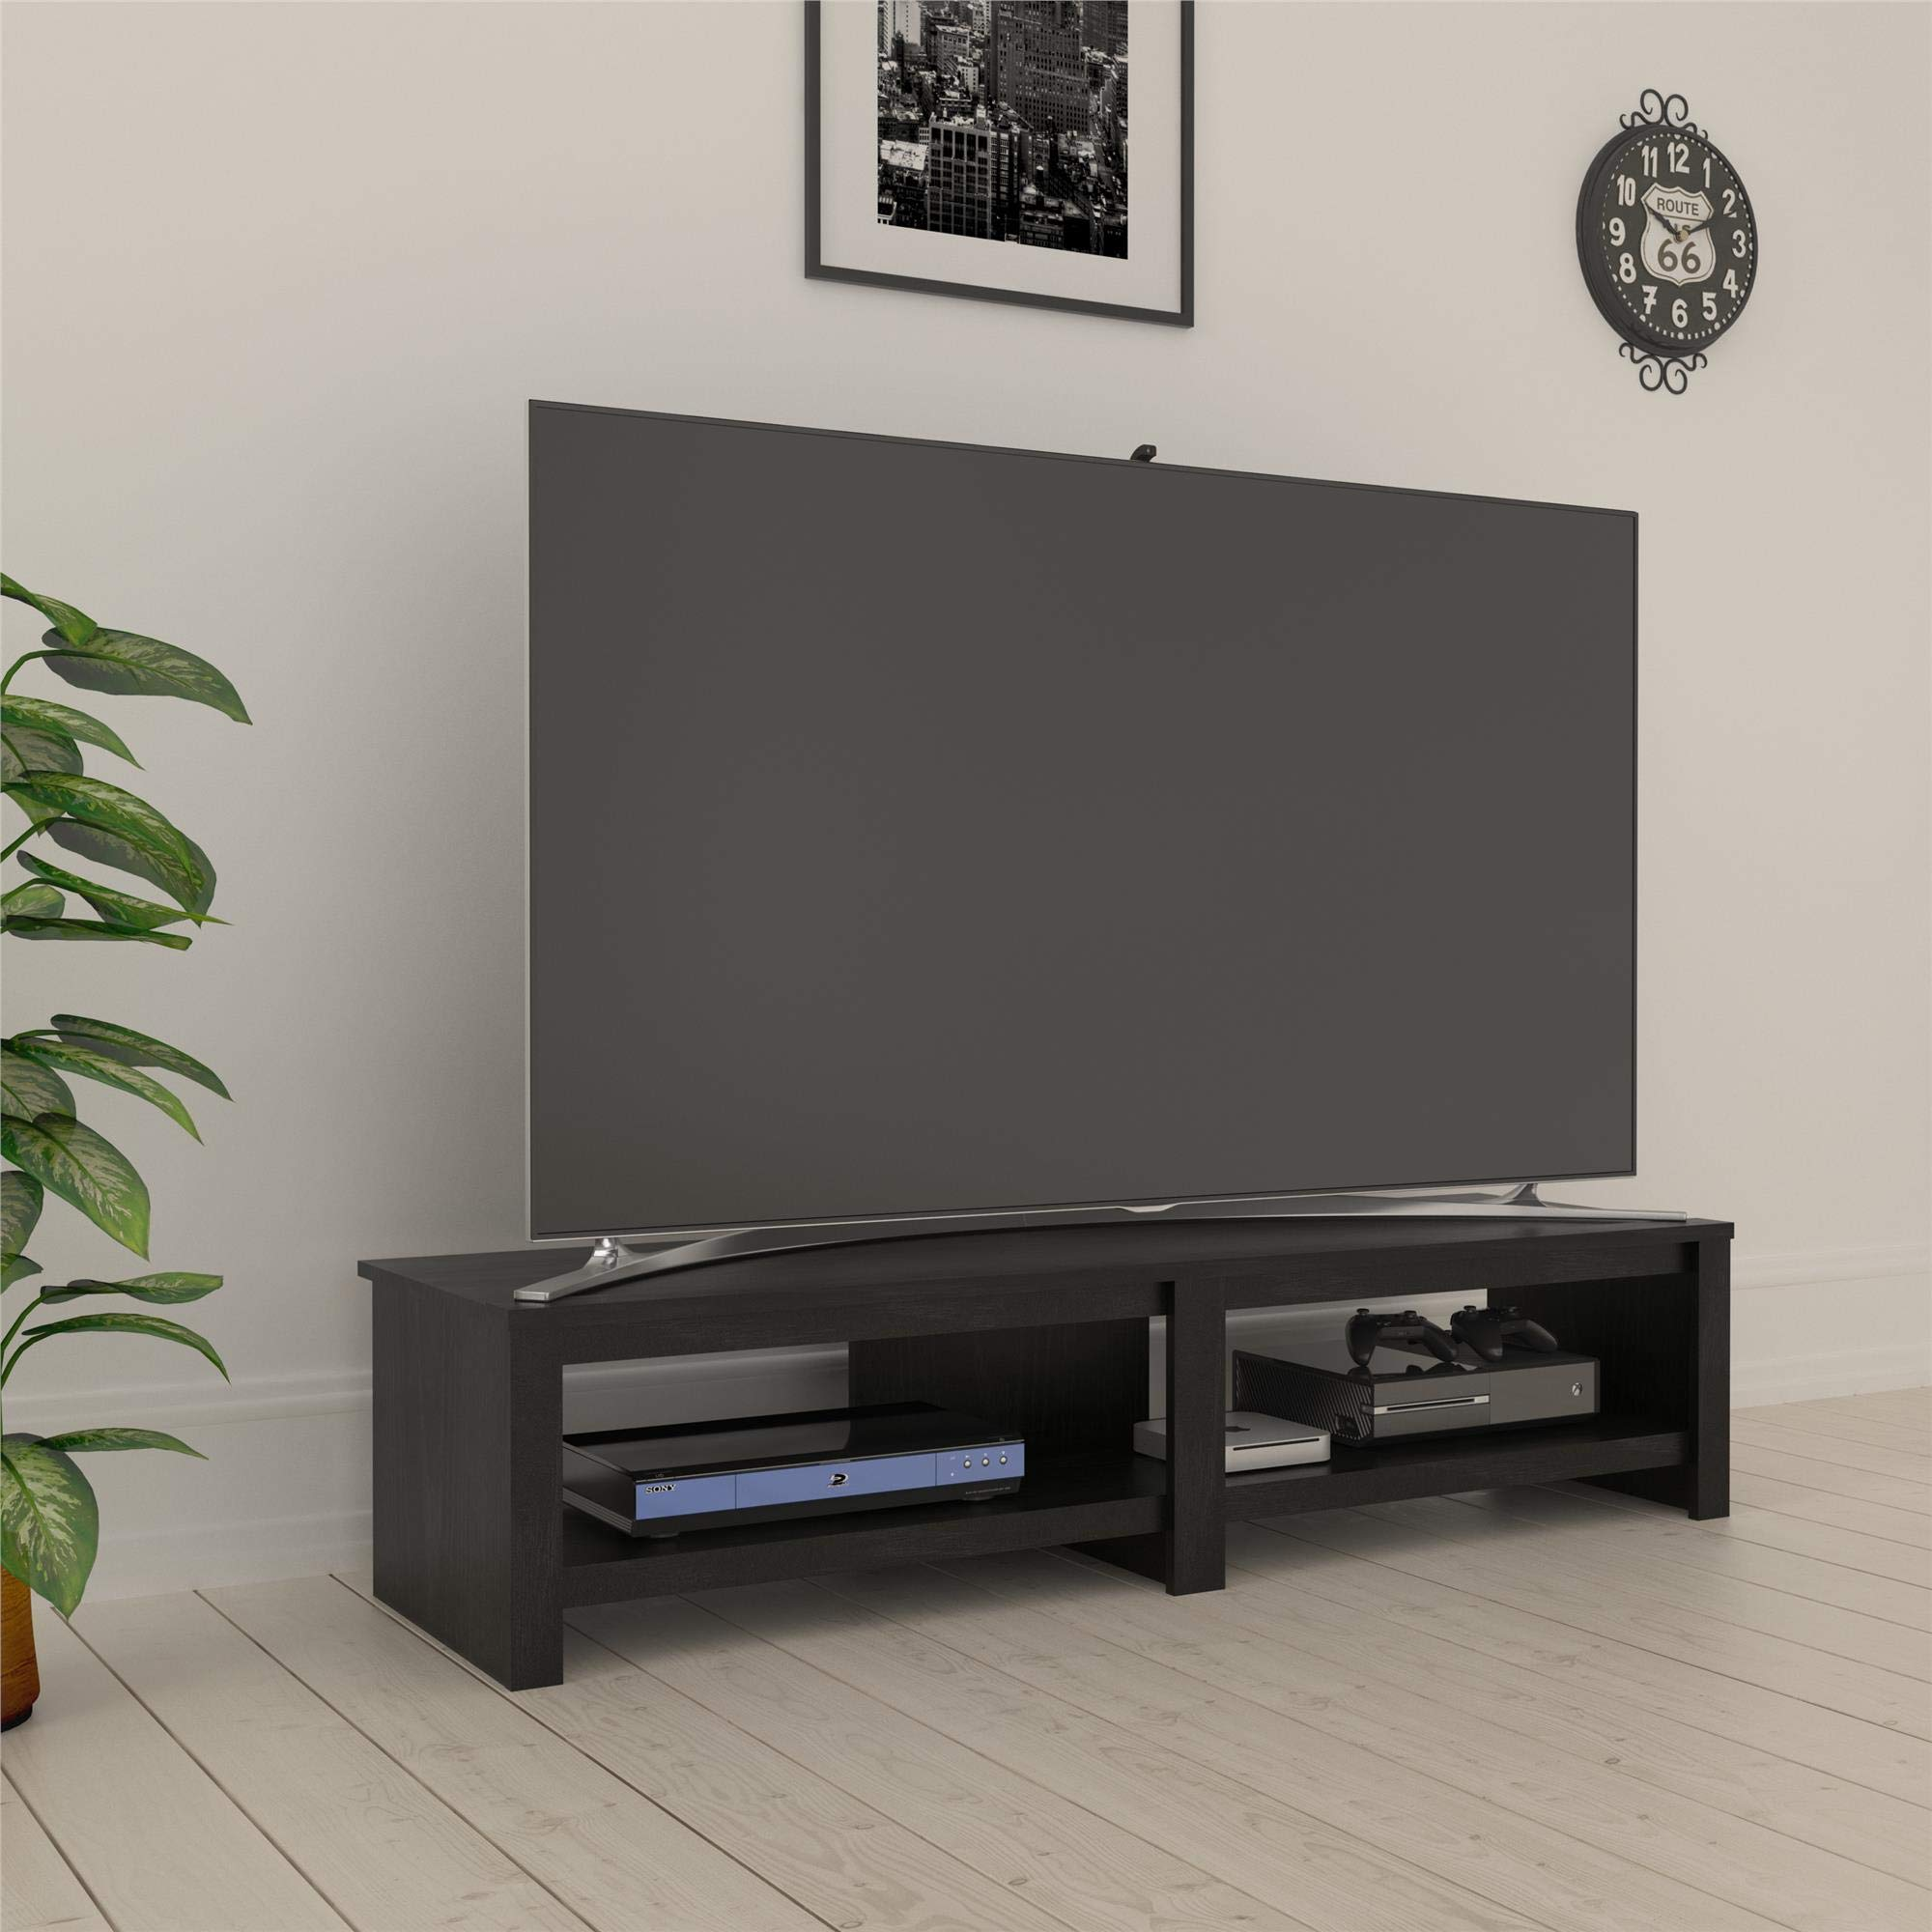 REALROOMS Tally TV Stand for TVs up to 74'', Black Oak by REALROOMS